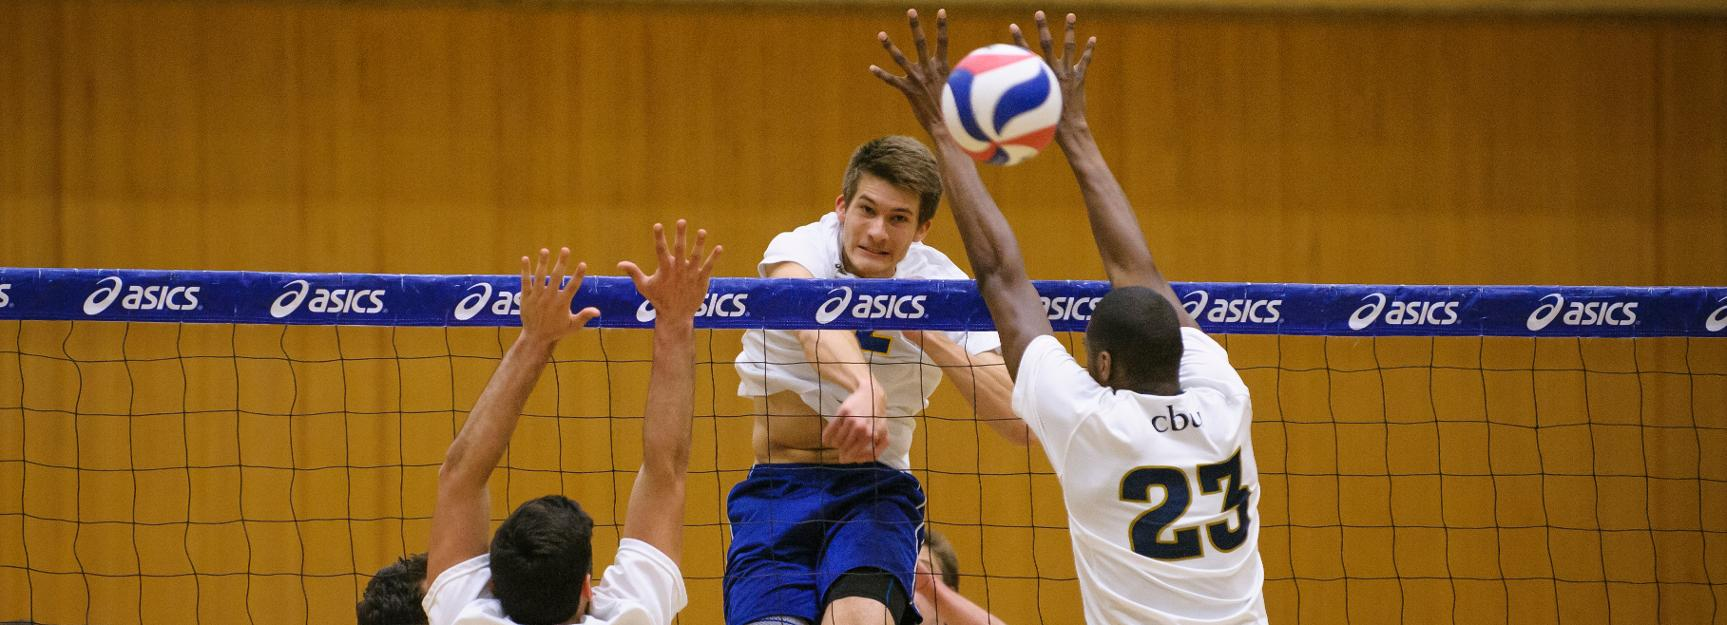 Fan Advisory: Tonight's Men's Volleyball Semifinal Match to be Televised on BYU TV